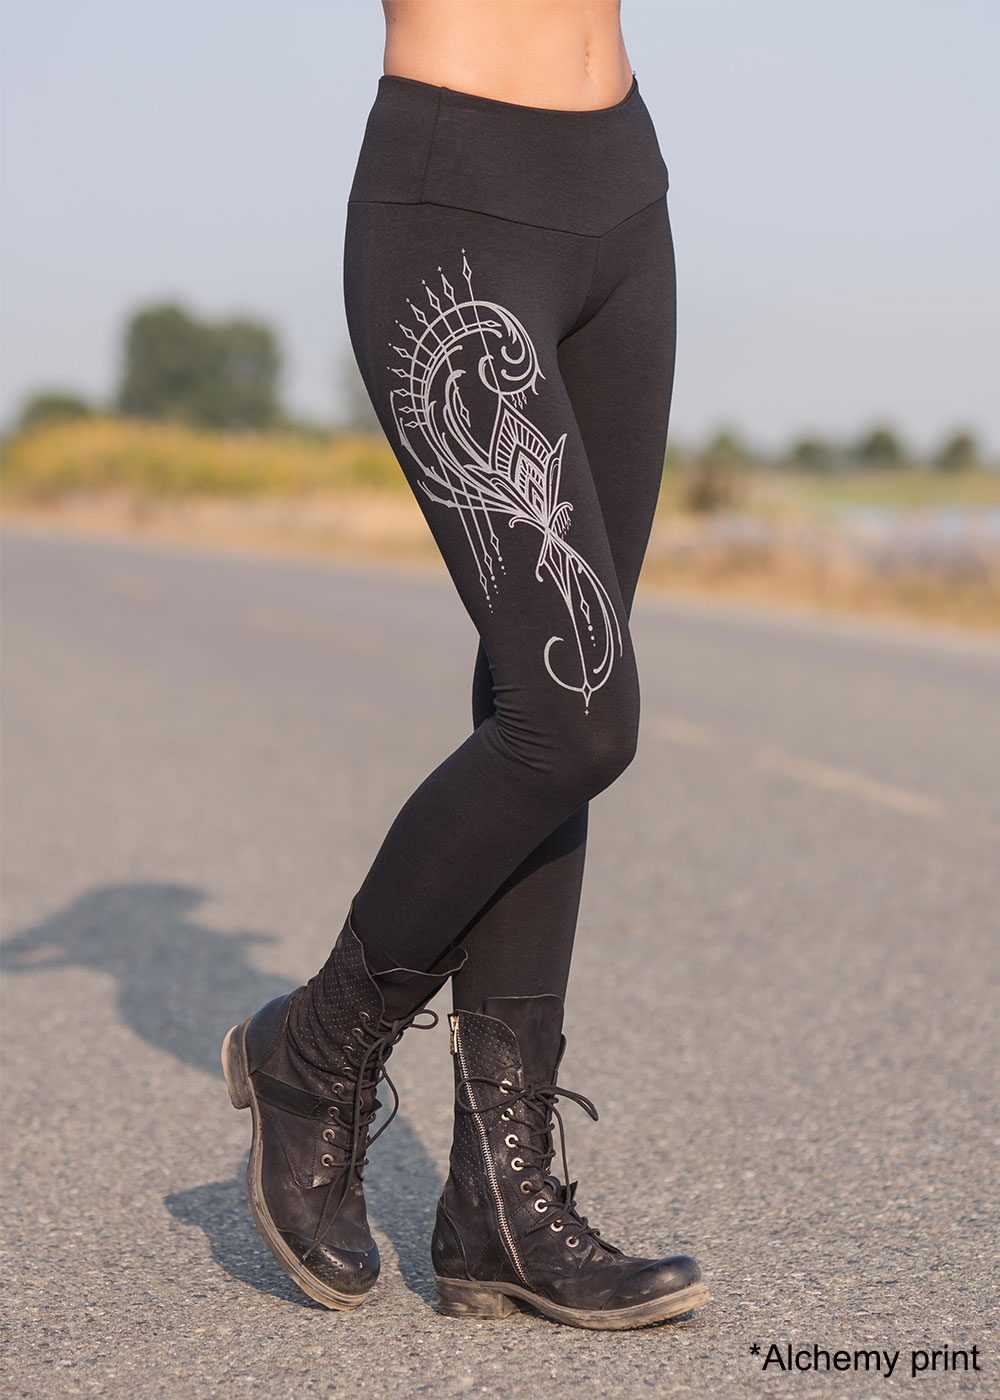 Spectrum Leggings in Organic Cotton and Bamboo, Nomads Hemp Wear